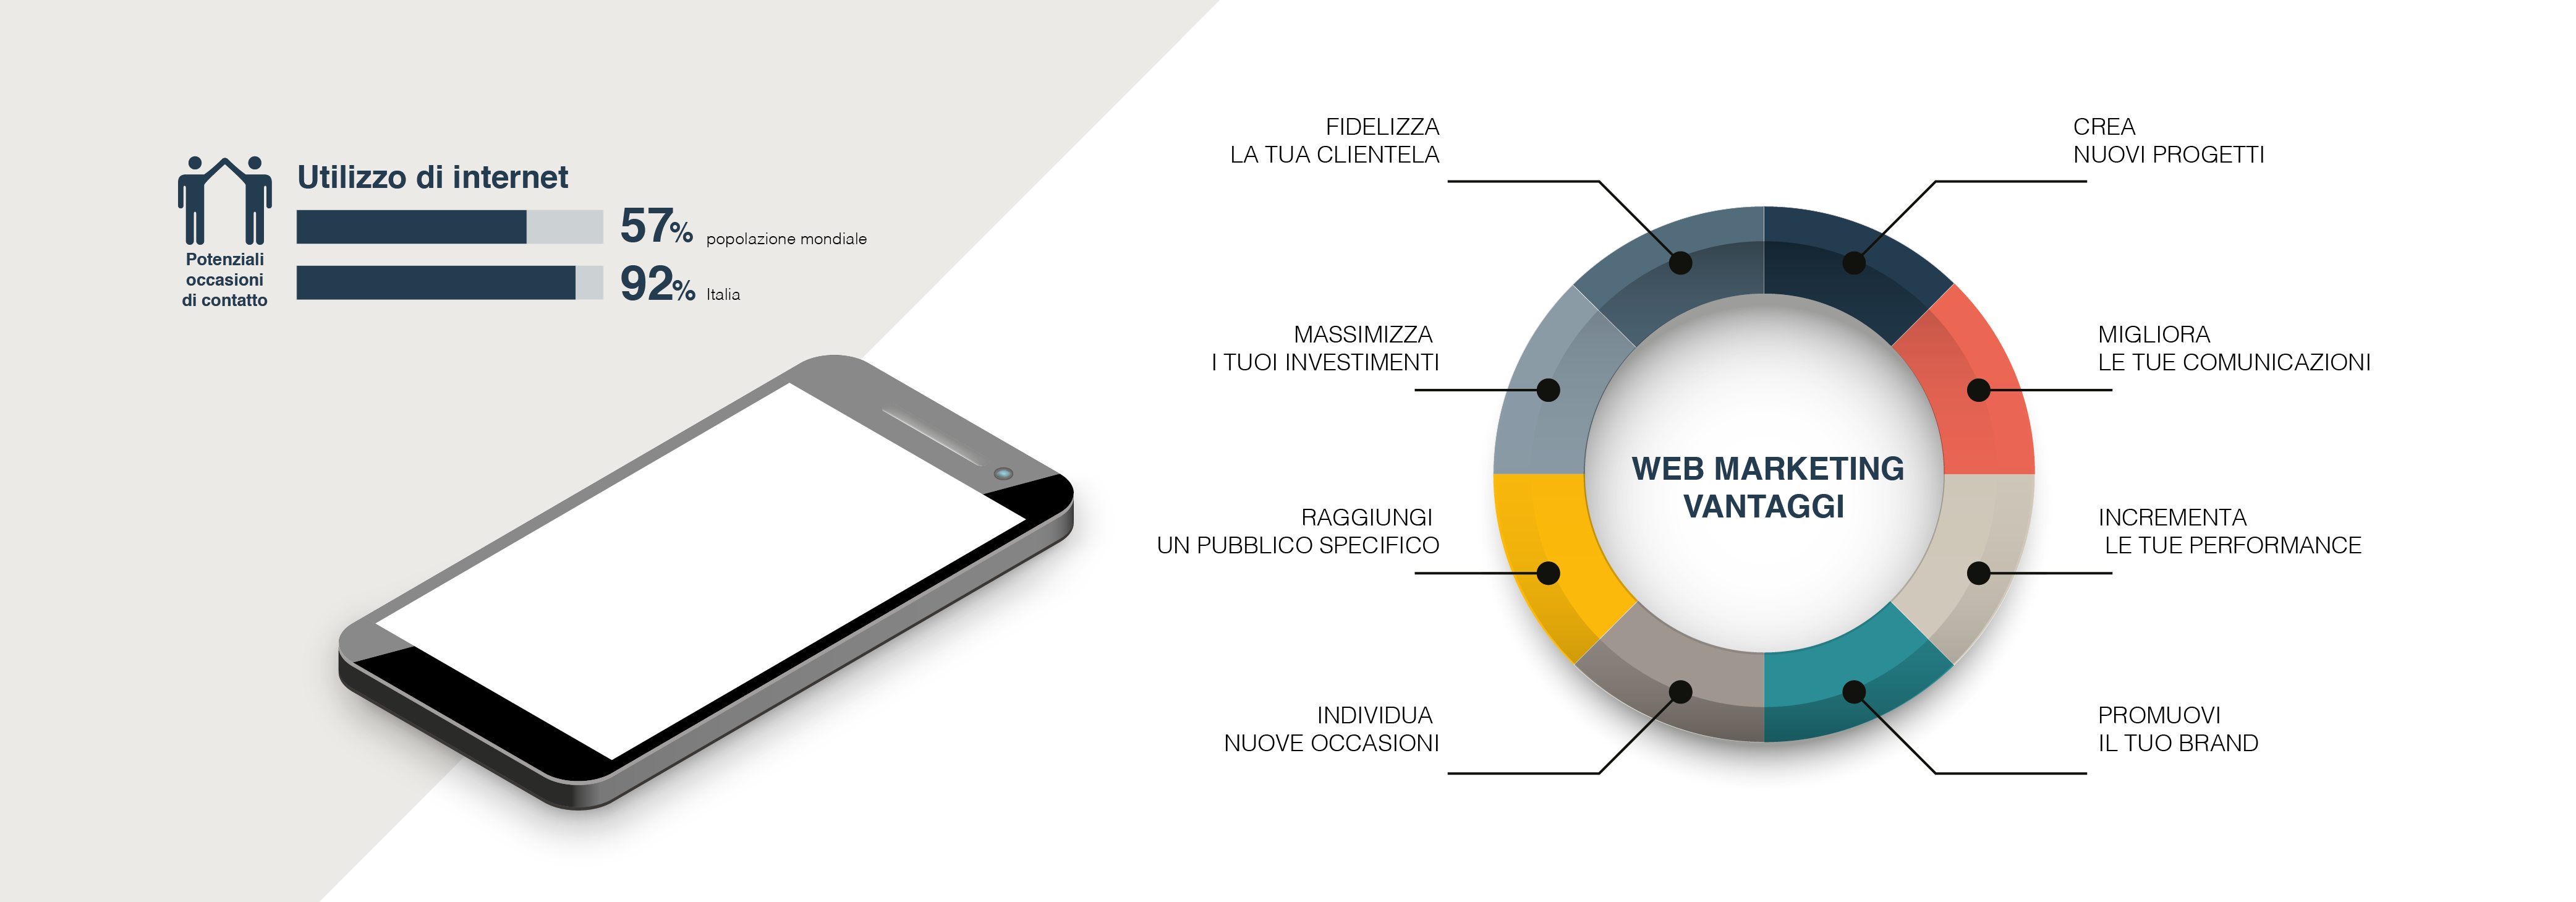 Web Marketing Services: perché sono strategici per un'azienda.